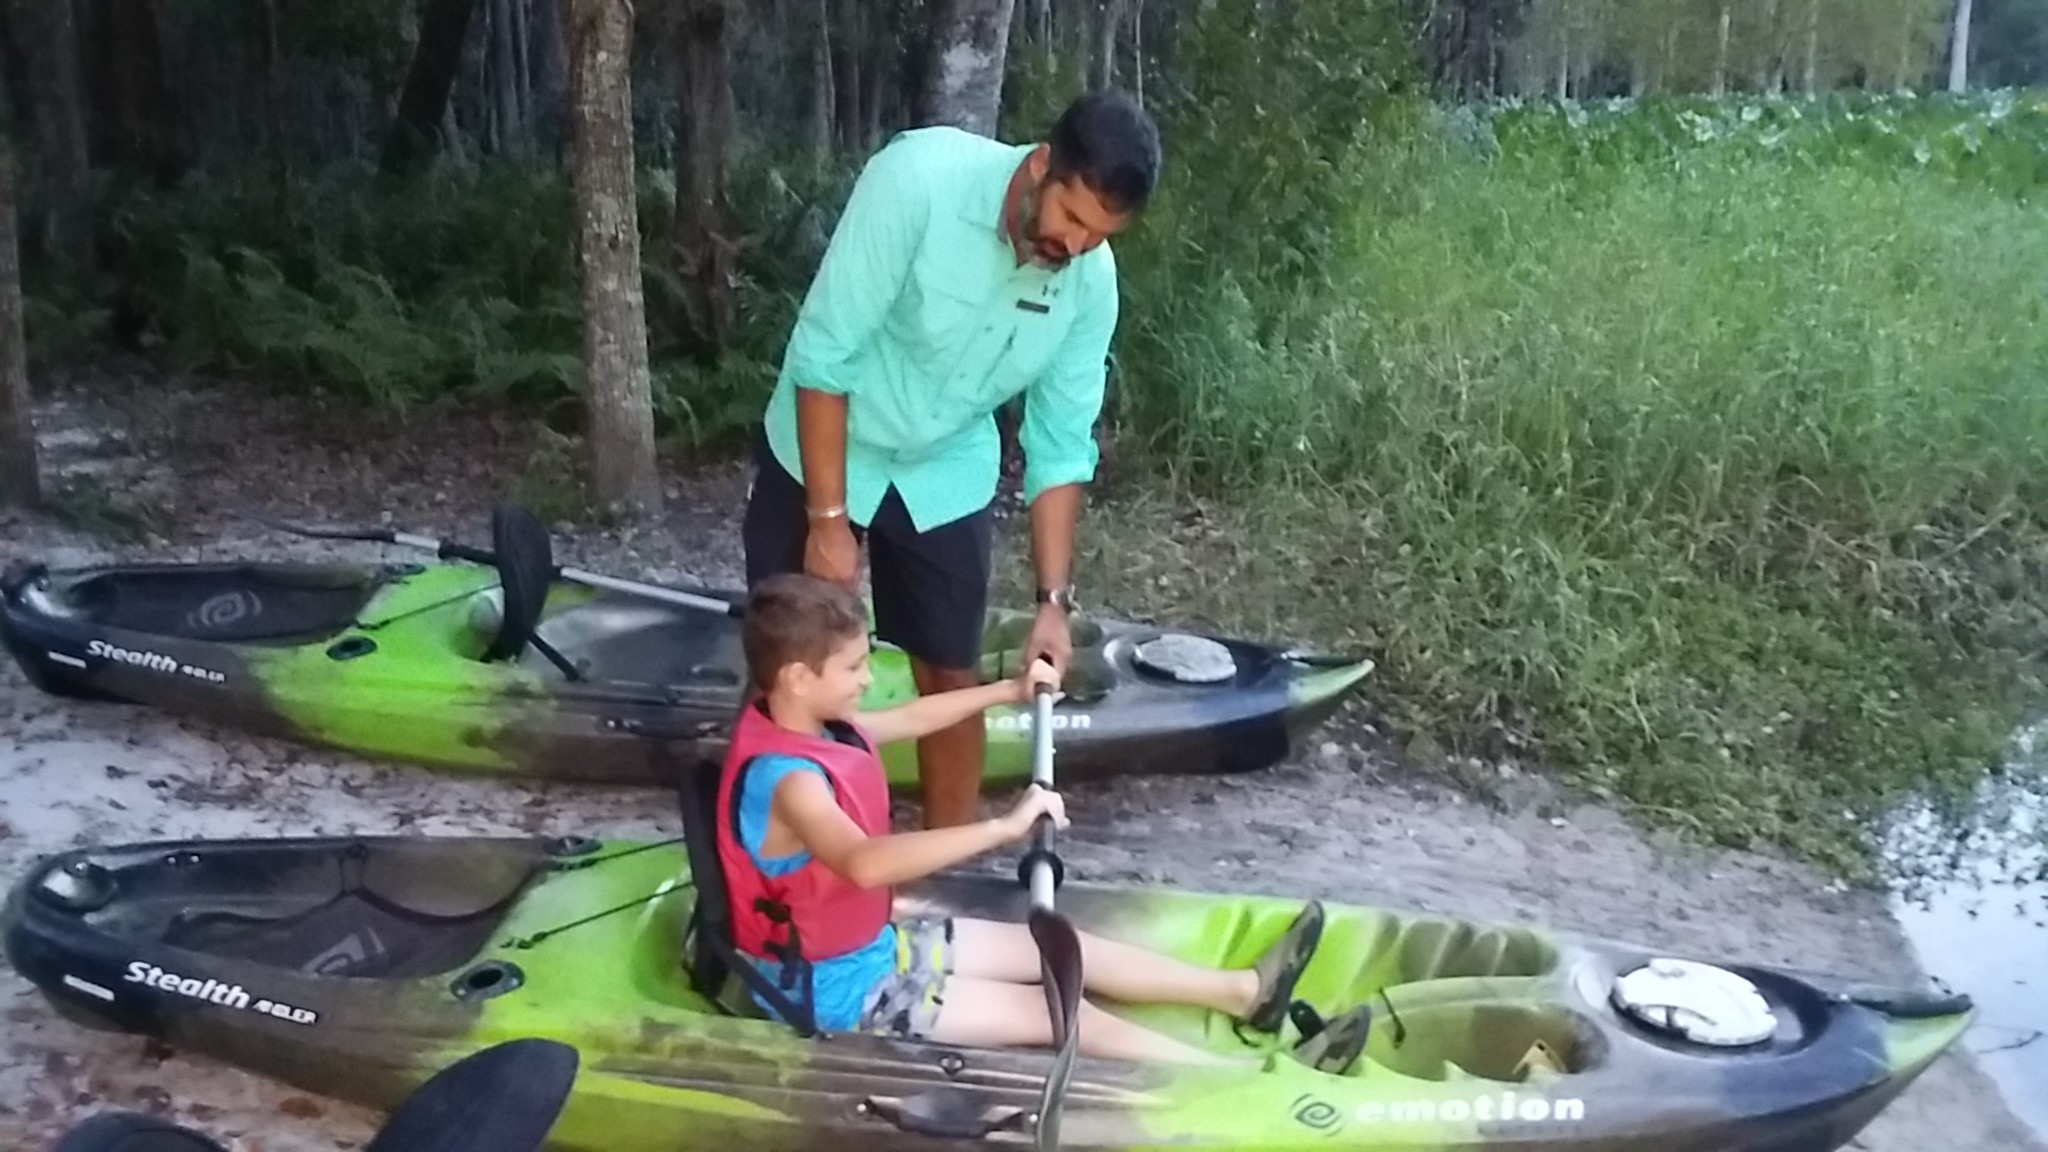 Family Travel Guide, Boating